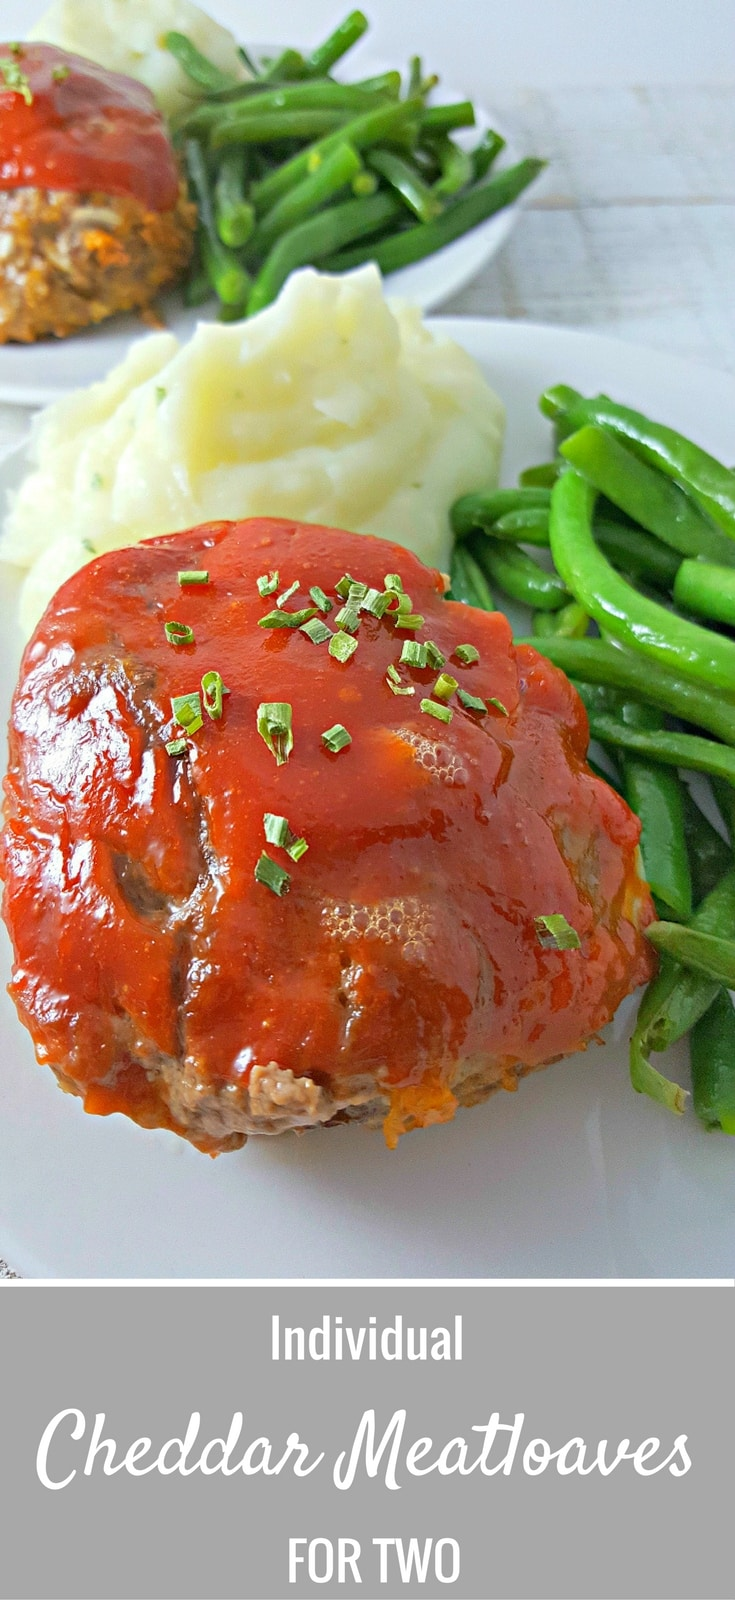 Individual Cheddar Meatloaves for Two - These individual meatloaves are filled with gooey cheddar and onion with a sweet barbecue topping. You could add a little heat to the barbecue by adding a dash of cayenne to it. This is another great option for your next romantic dinner for two. I like to serve mine with mashed potatoes and green beans or steamed broccoli.